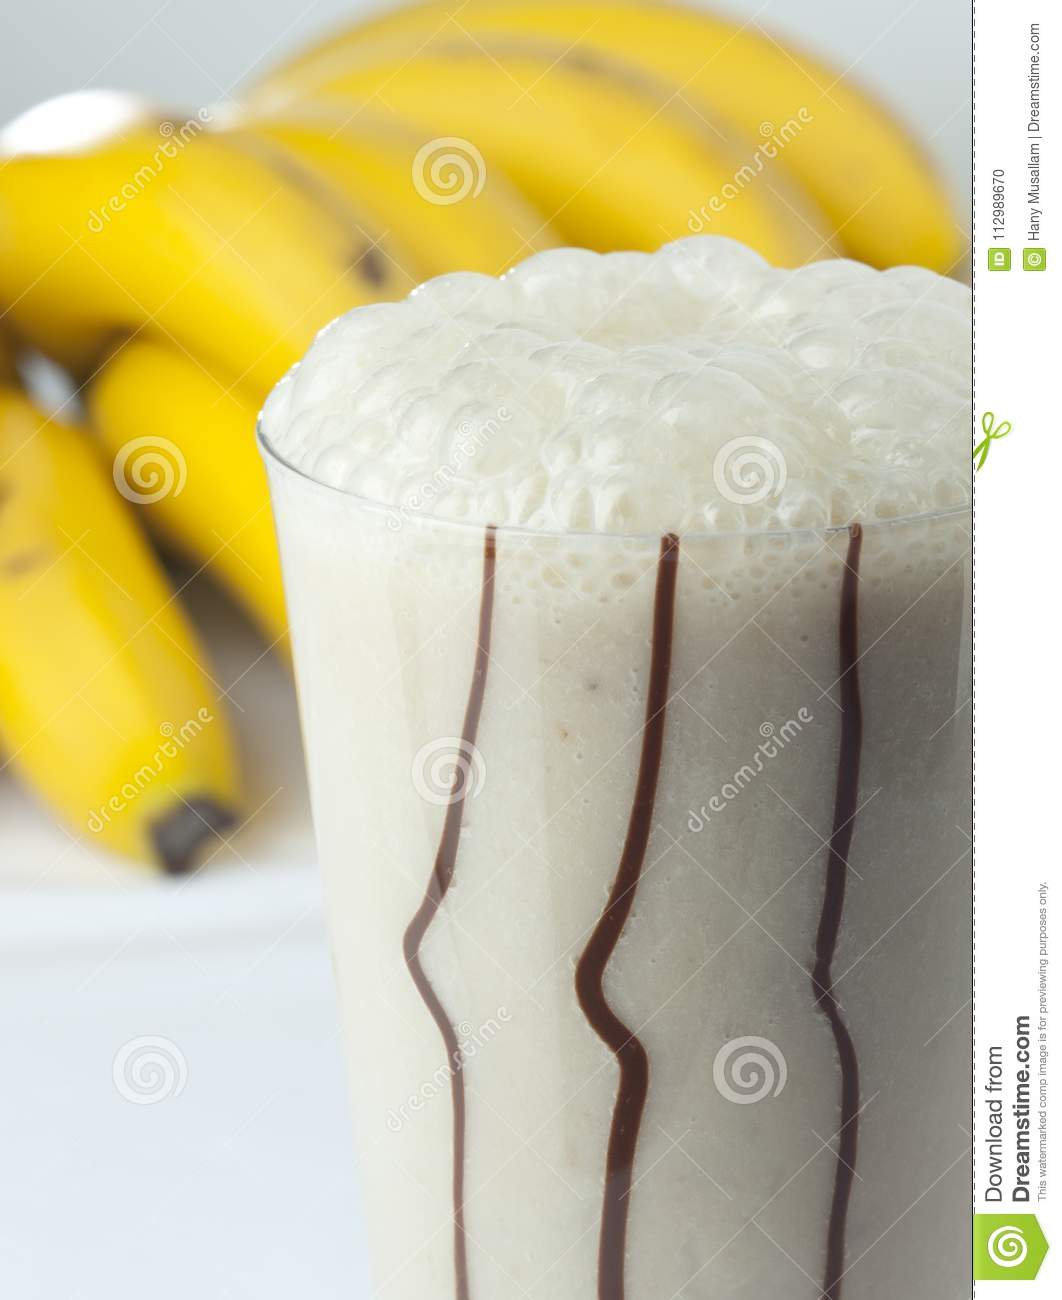 A glass of banana and milk cocktail close up with full fruits